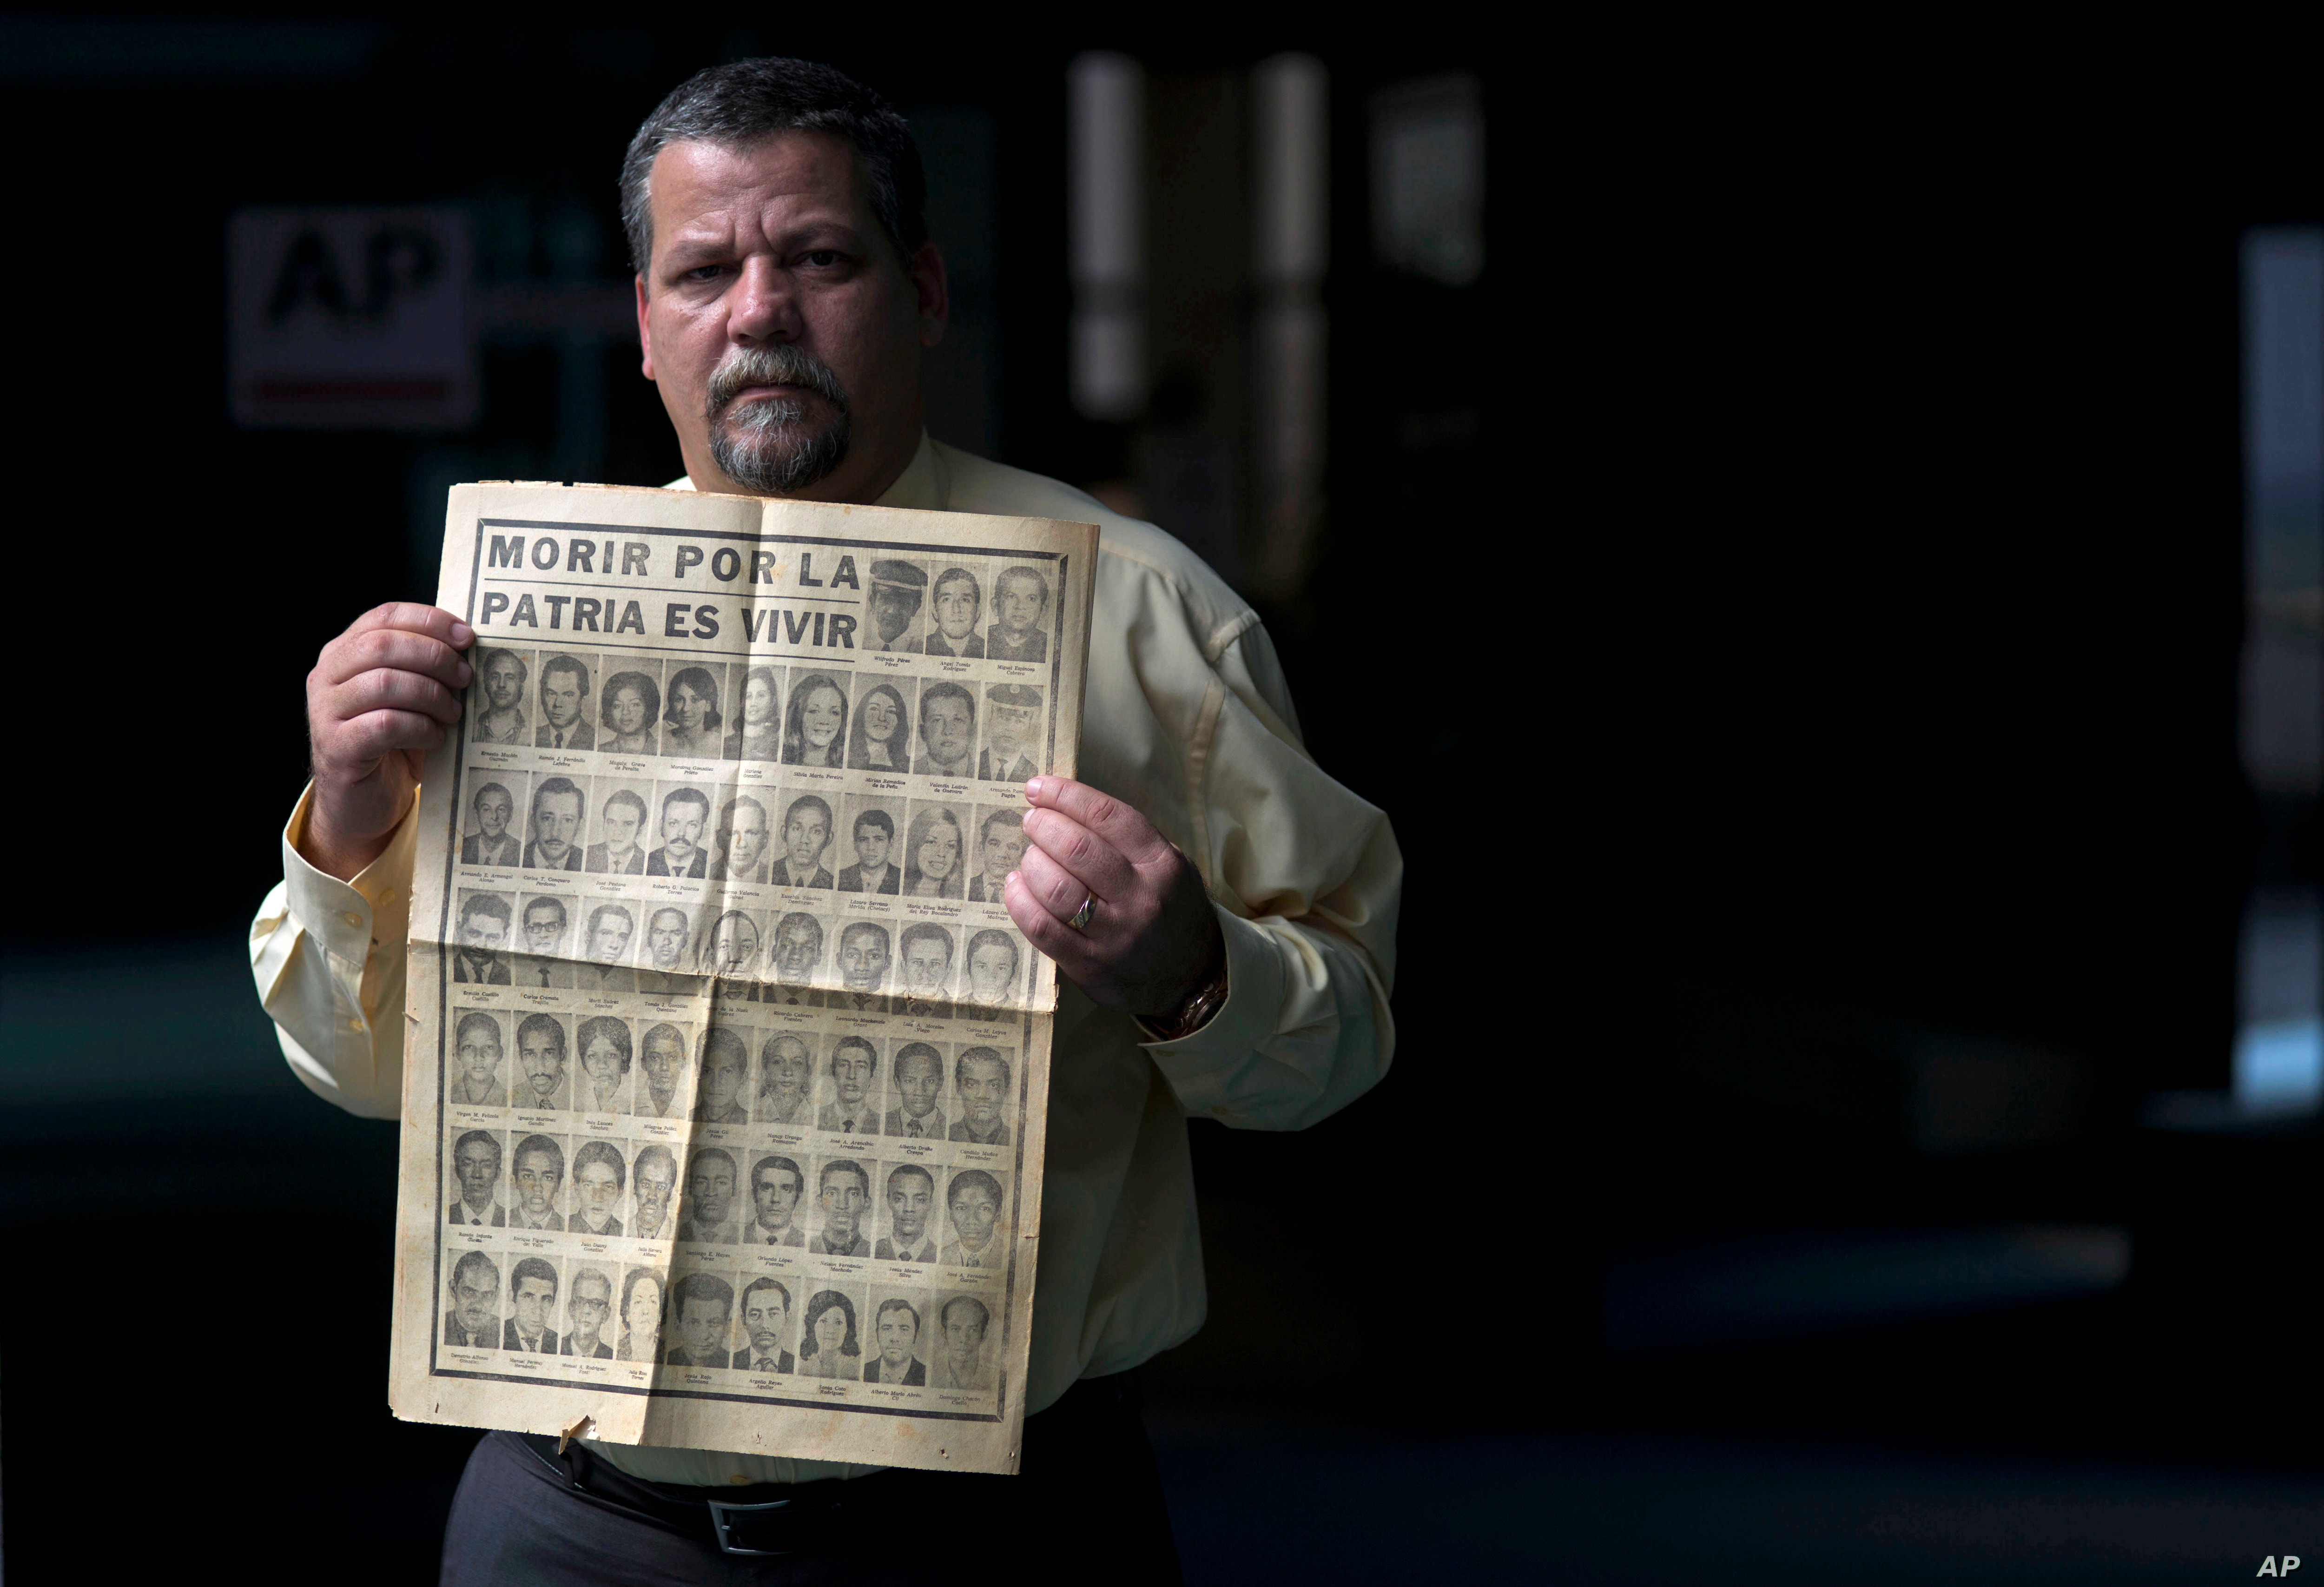 FILE - Camilo Rojo, whose father died in the Cubana Airlines plane that exploded in 1976 while flying from Barbados to Cuba, holds up the Granma newspaper that published the news of the bombing in Havana, Cuba, Feb. 17, 2015.